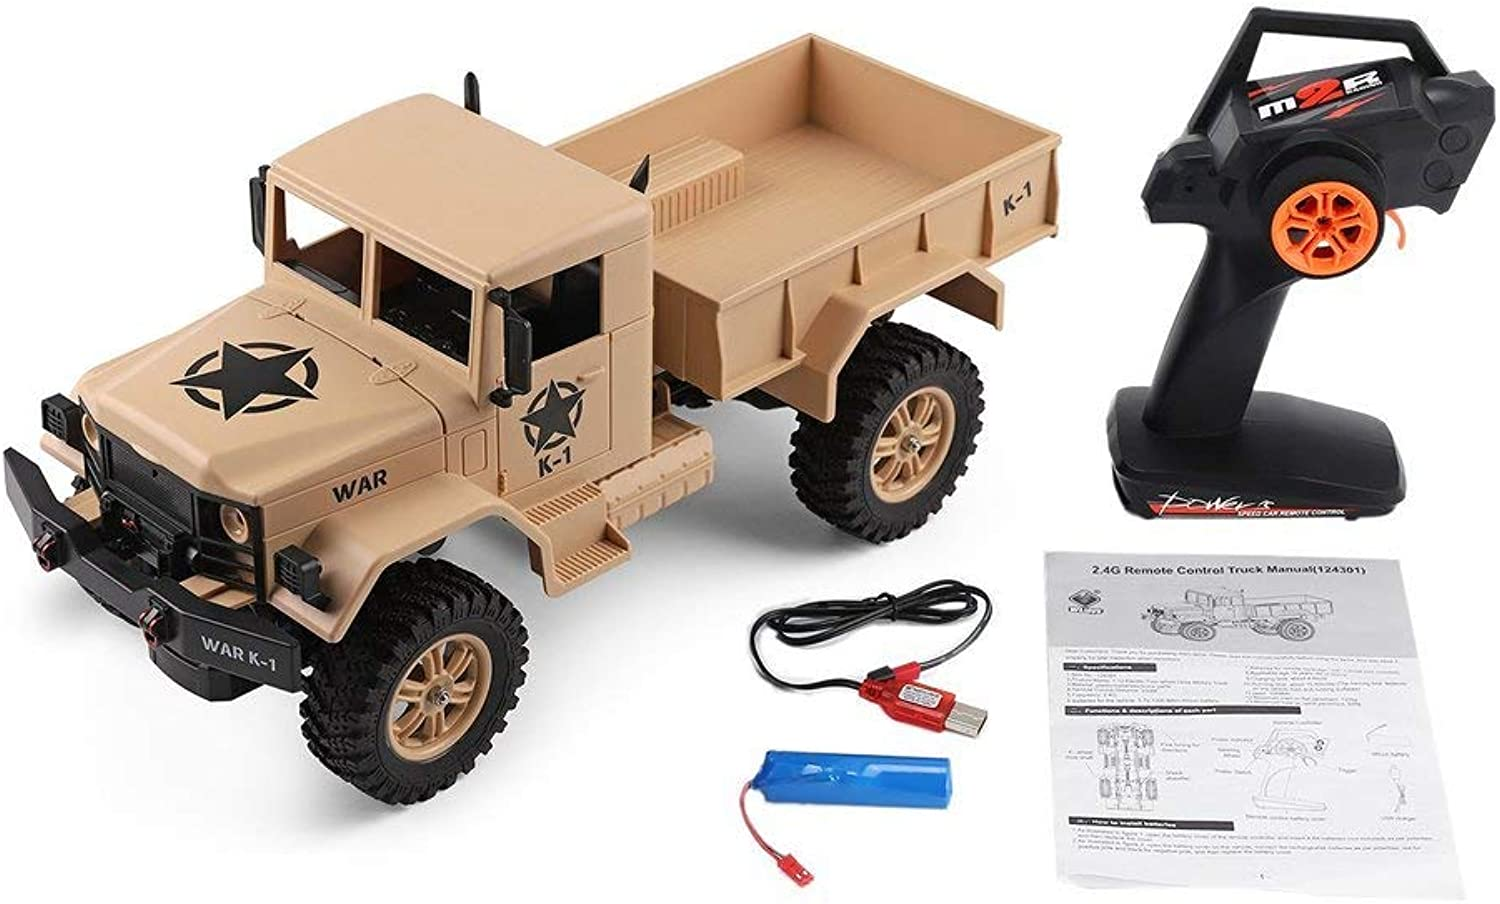 Generic Wltoys 124301 2.4ghz 1 12 4wd OffRoad Rc Military Truck Vehicle Rc Car Remote Control Truck Model Toys Hobby for Kids Adults Yellow